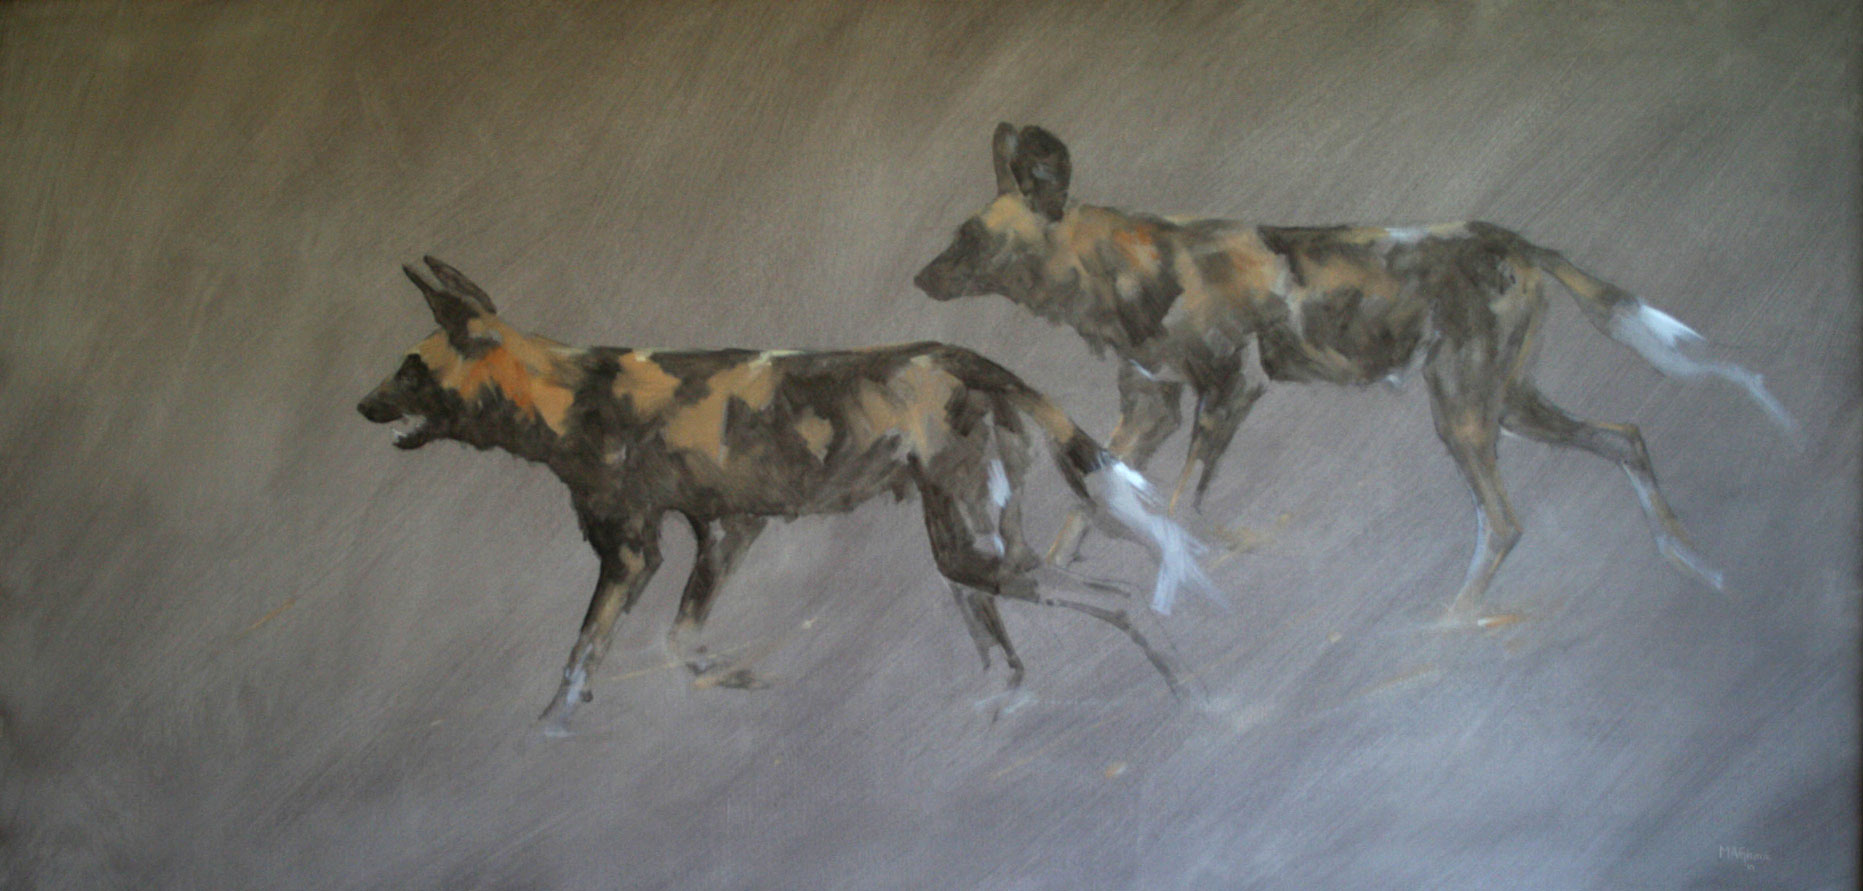 Wild-Dogs---Oil-Sketch-on-linen-canvas-by-Mike-Ghaui--March-11-'10-brtr-img